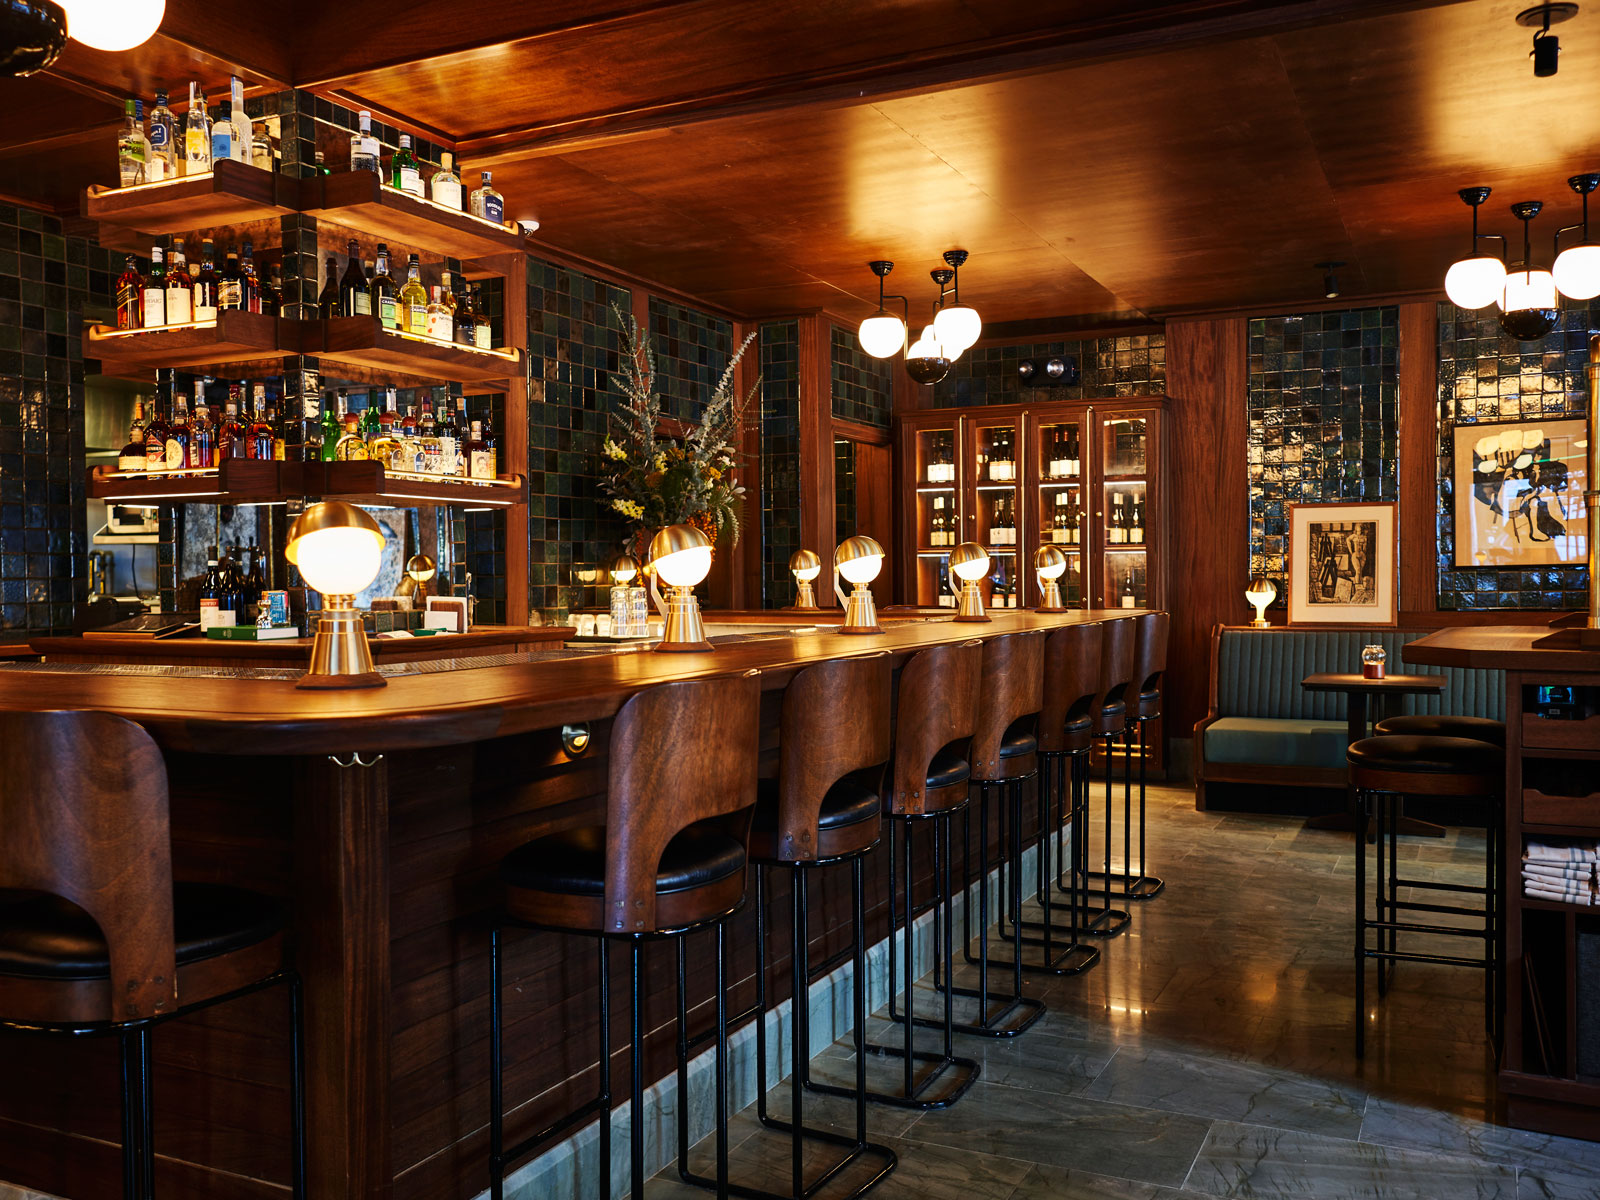 Simon & the Whale Opens in New York's Freehand Hotel